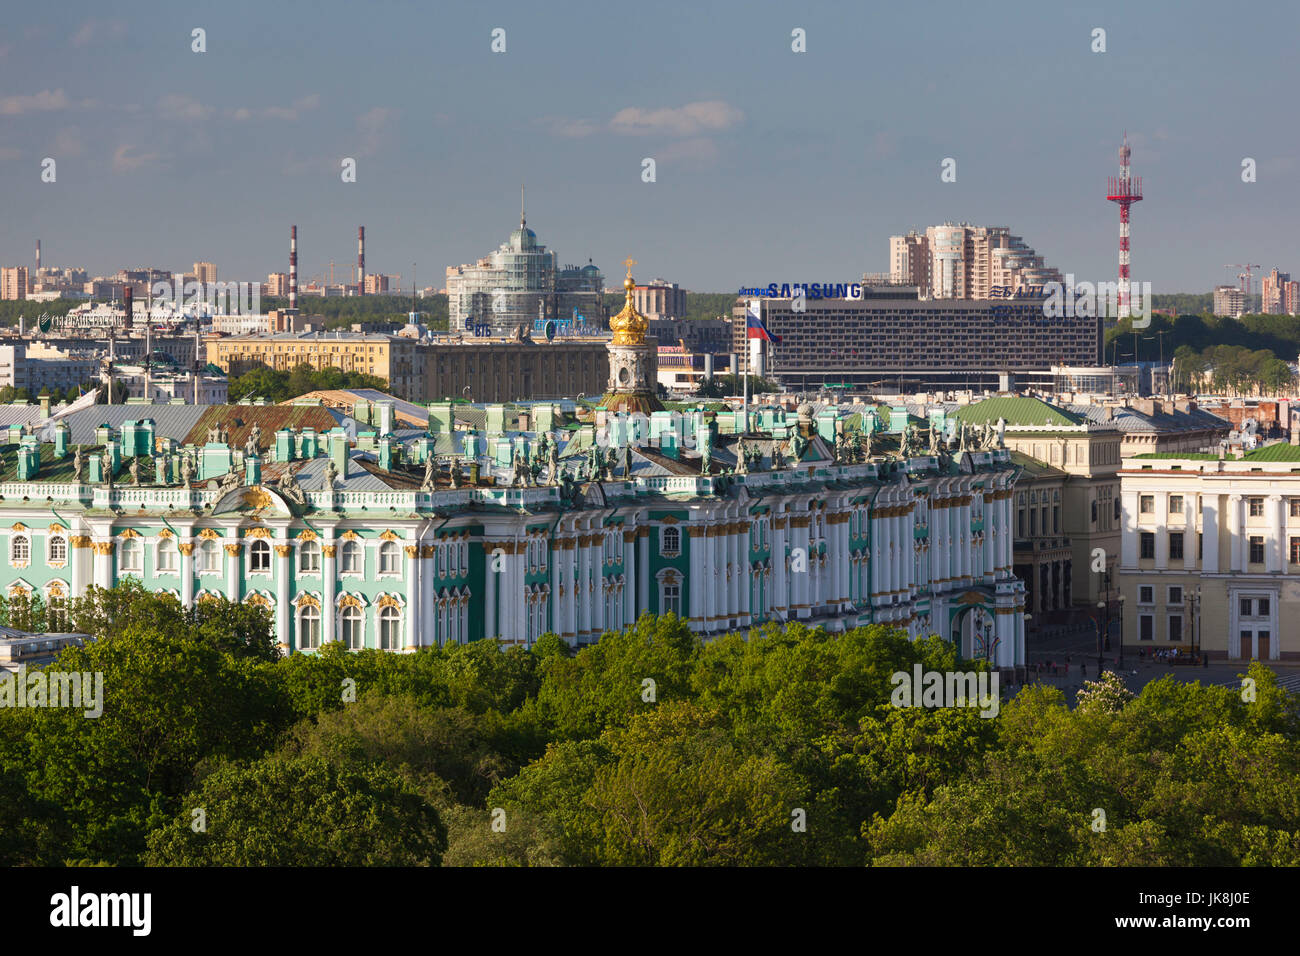 Russia, Saint Petersburg, Center, view of the Hermitage Museum from St. Isaac Cathedral - Stock Image